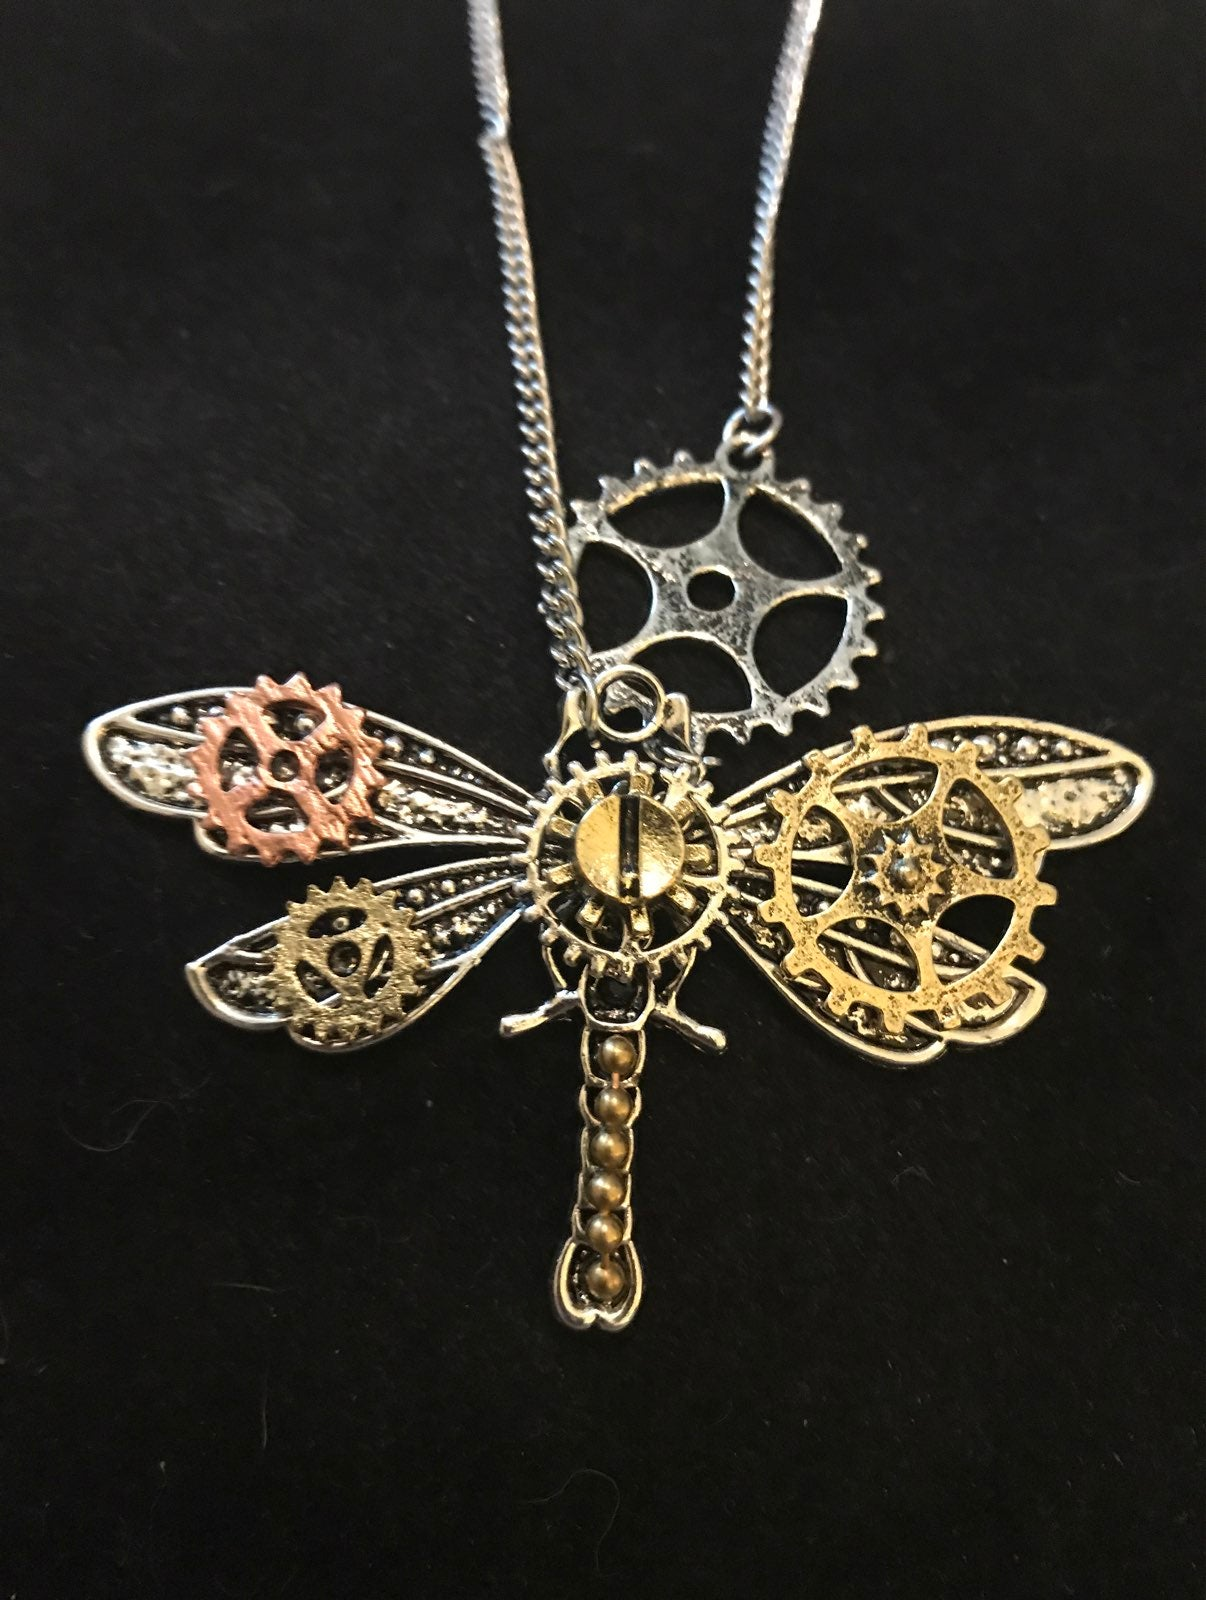 Steampunk dragonfly necklace with chain